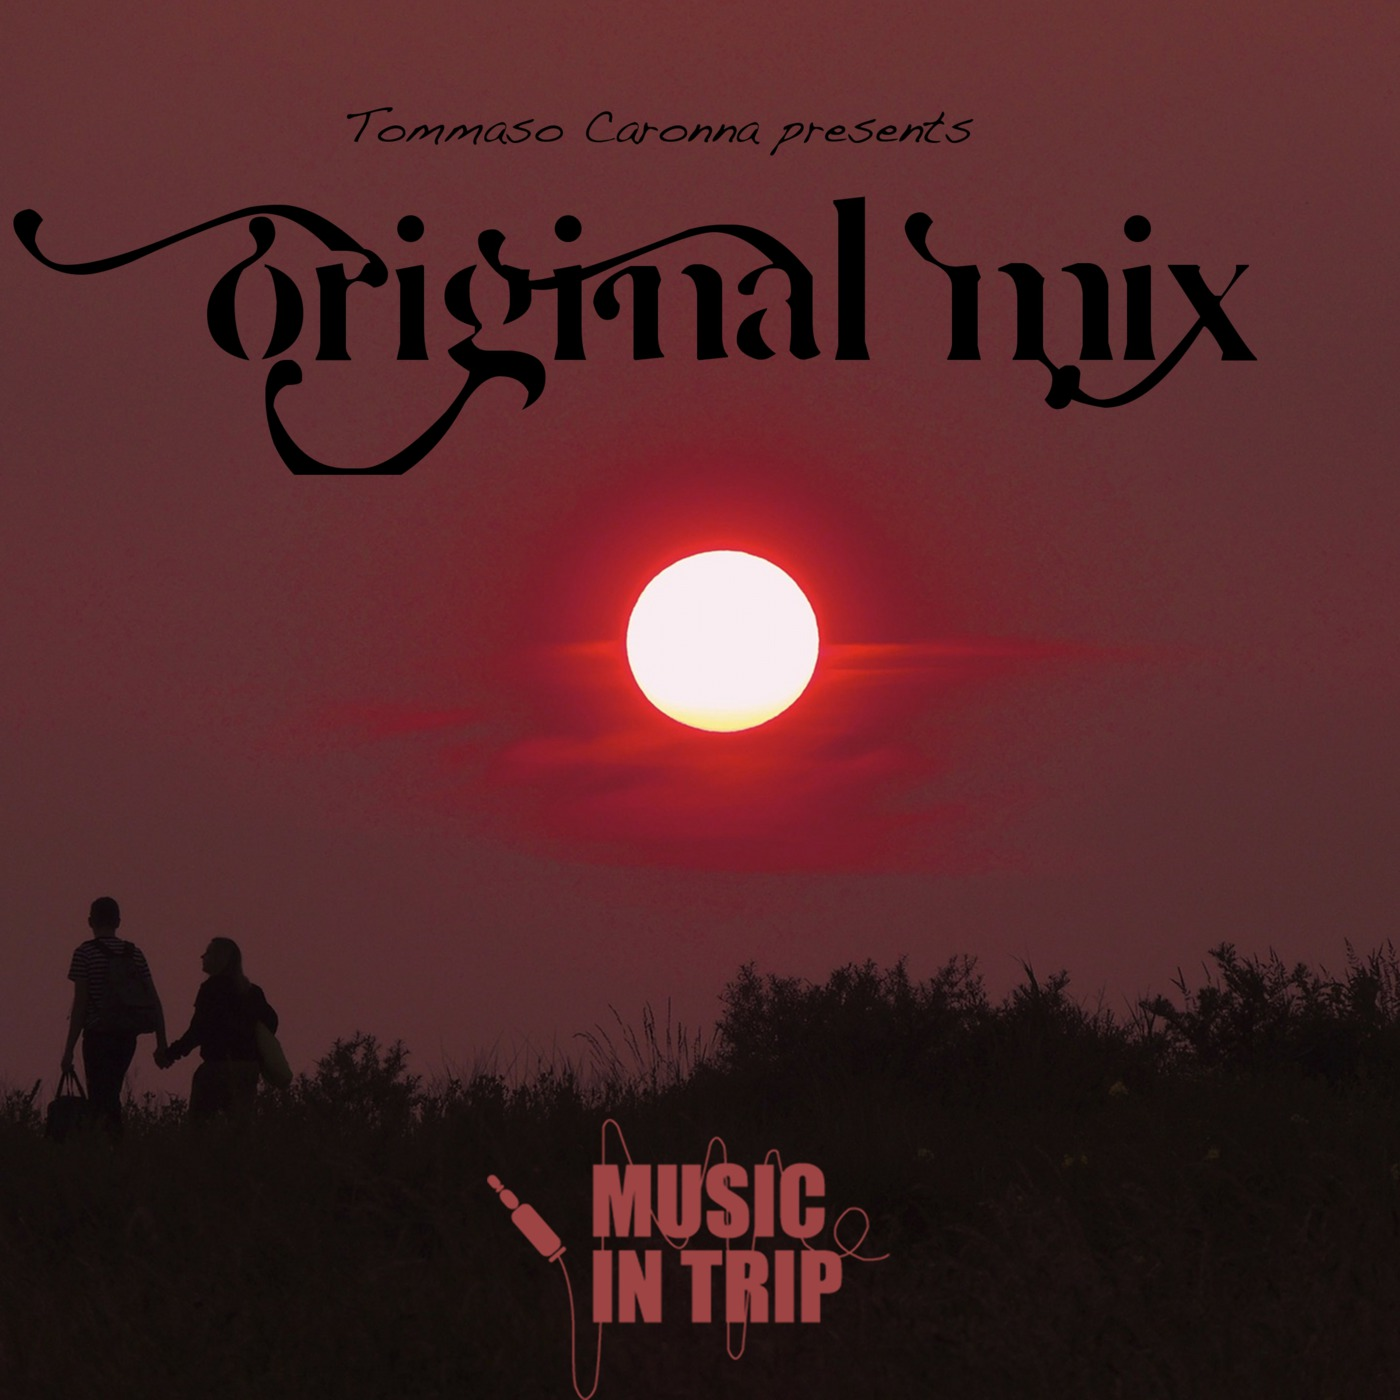 Tommaso Caronna presents Original Mix